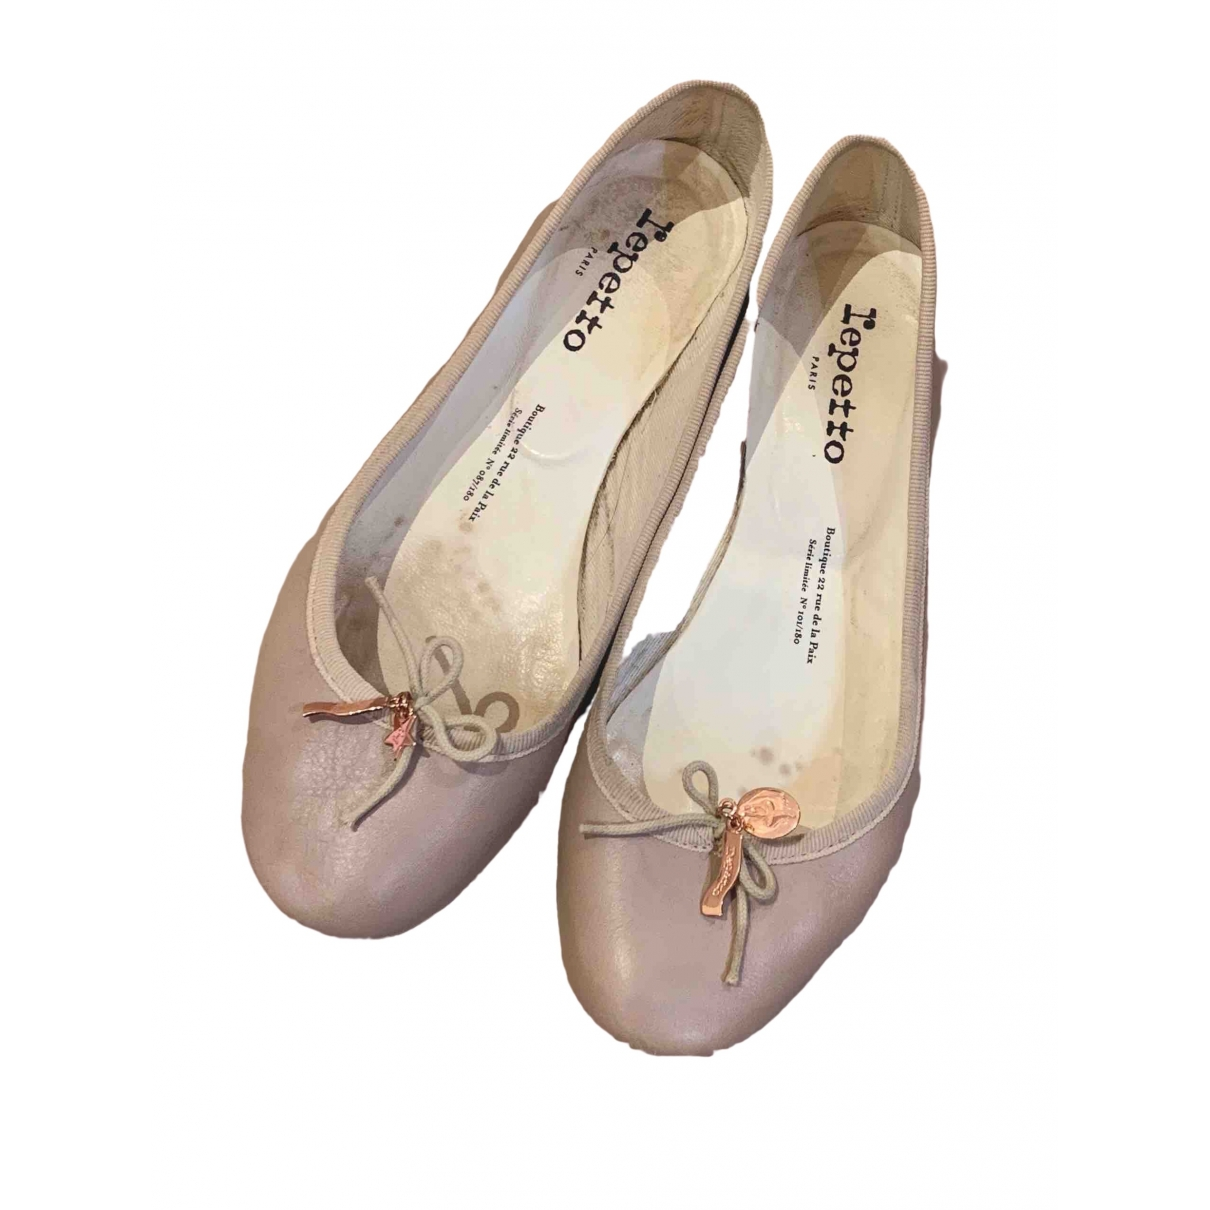 Repetto \N Ballerinas in  Beige Leder